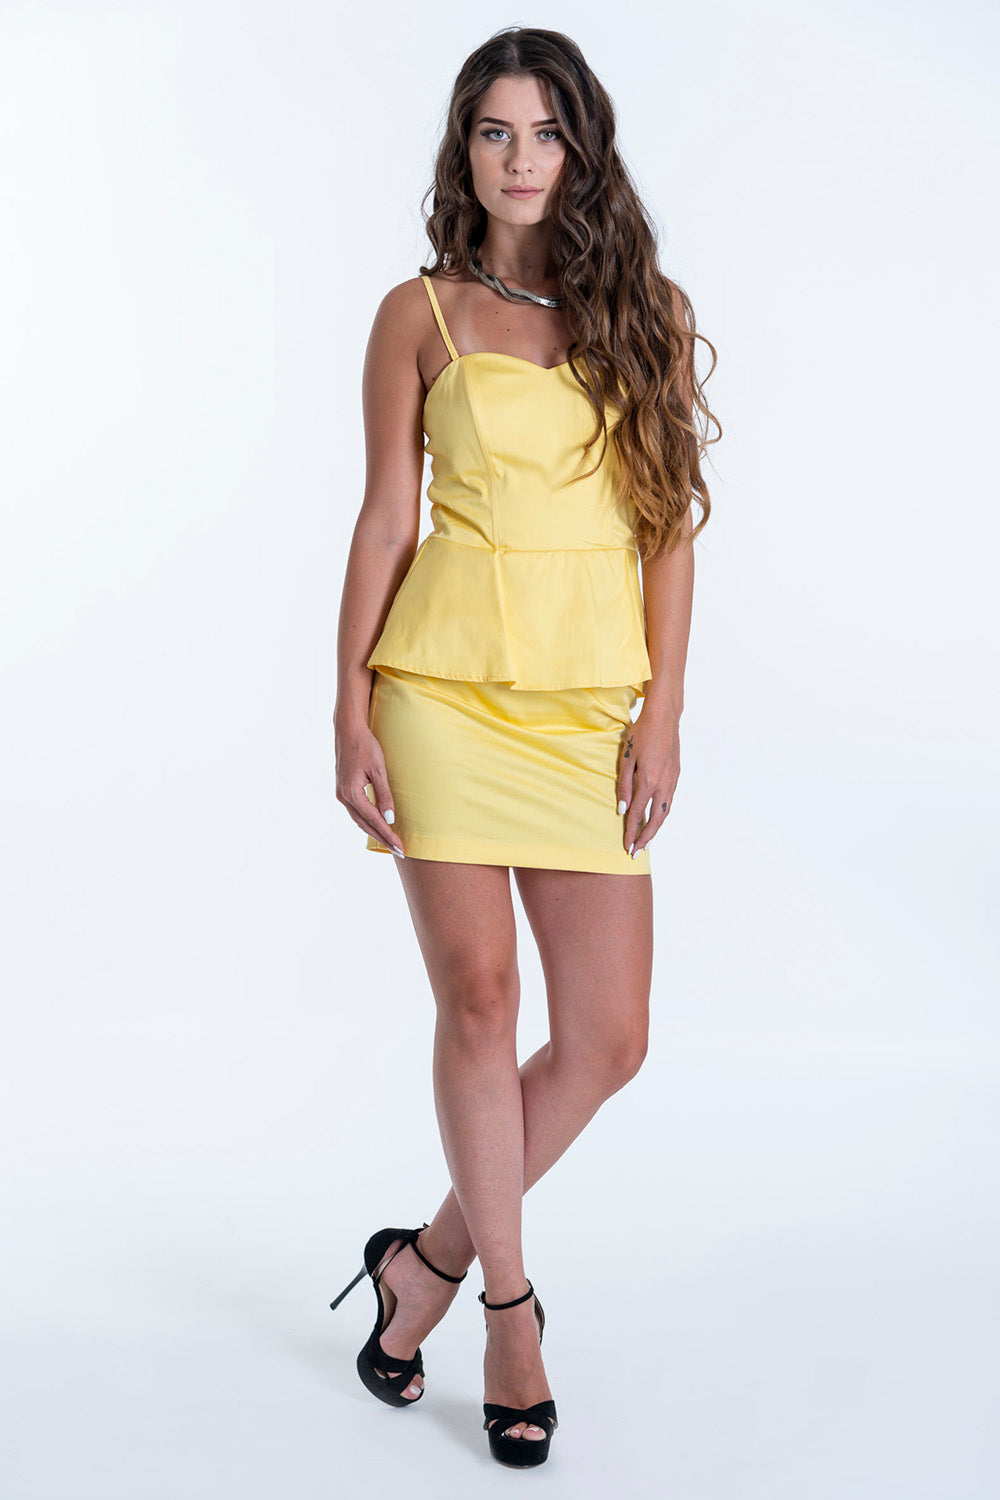 On Line detachable cami straps with peplum in waist